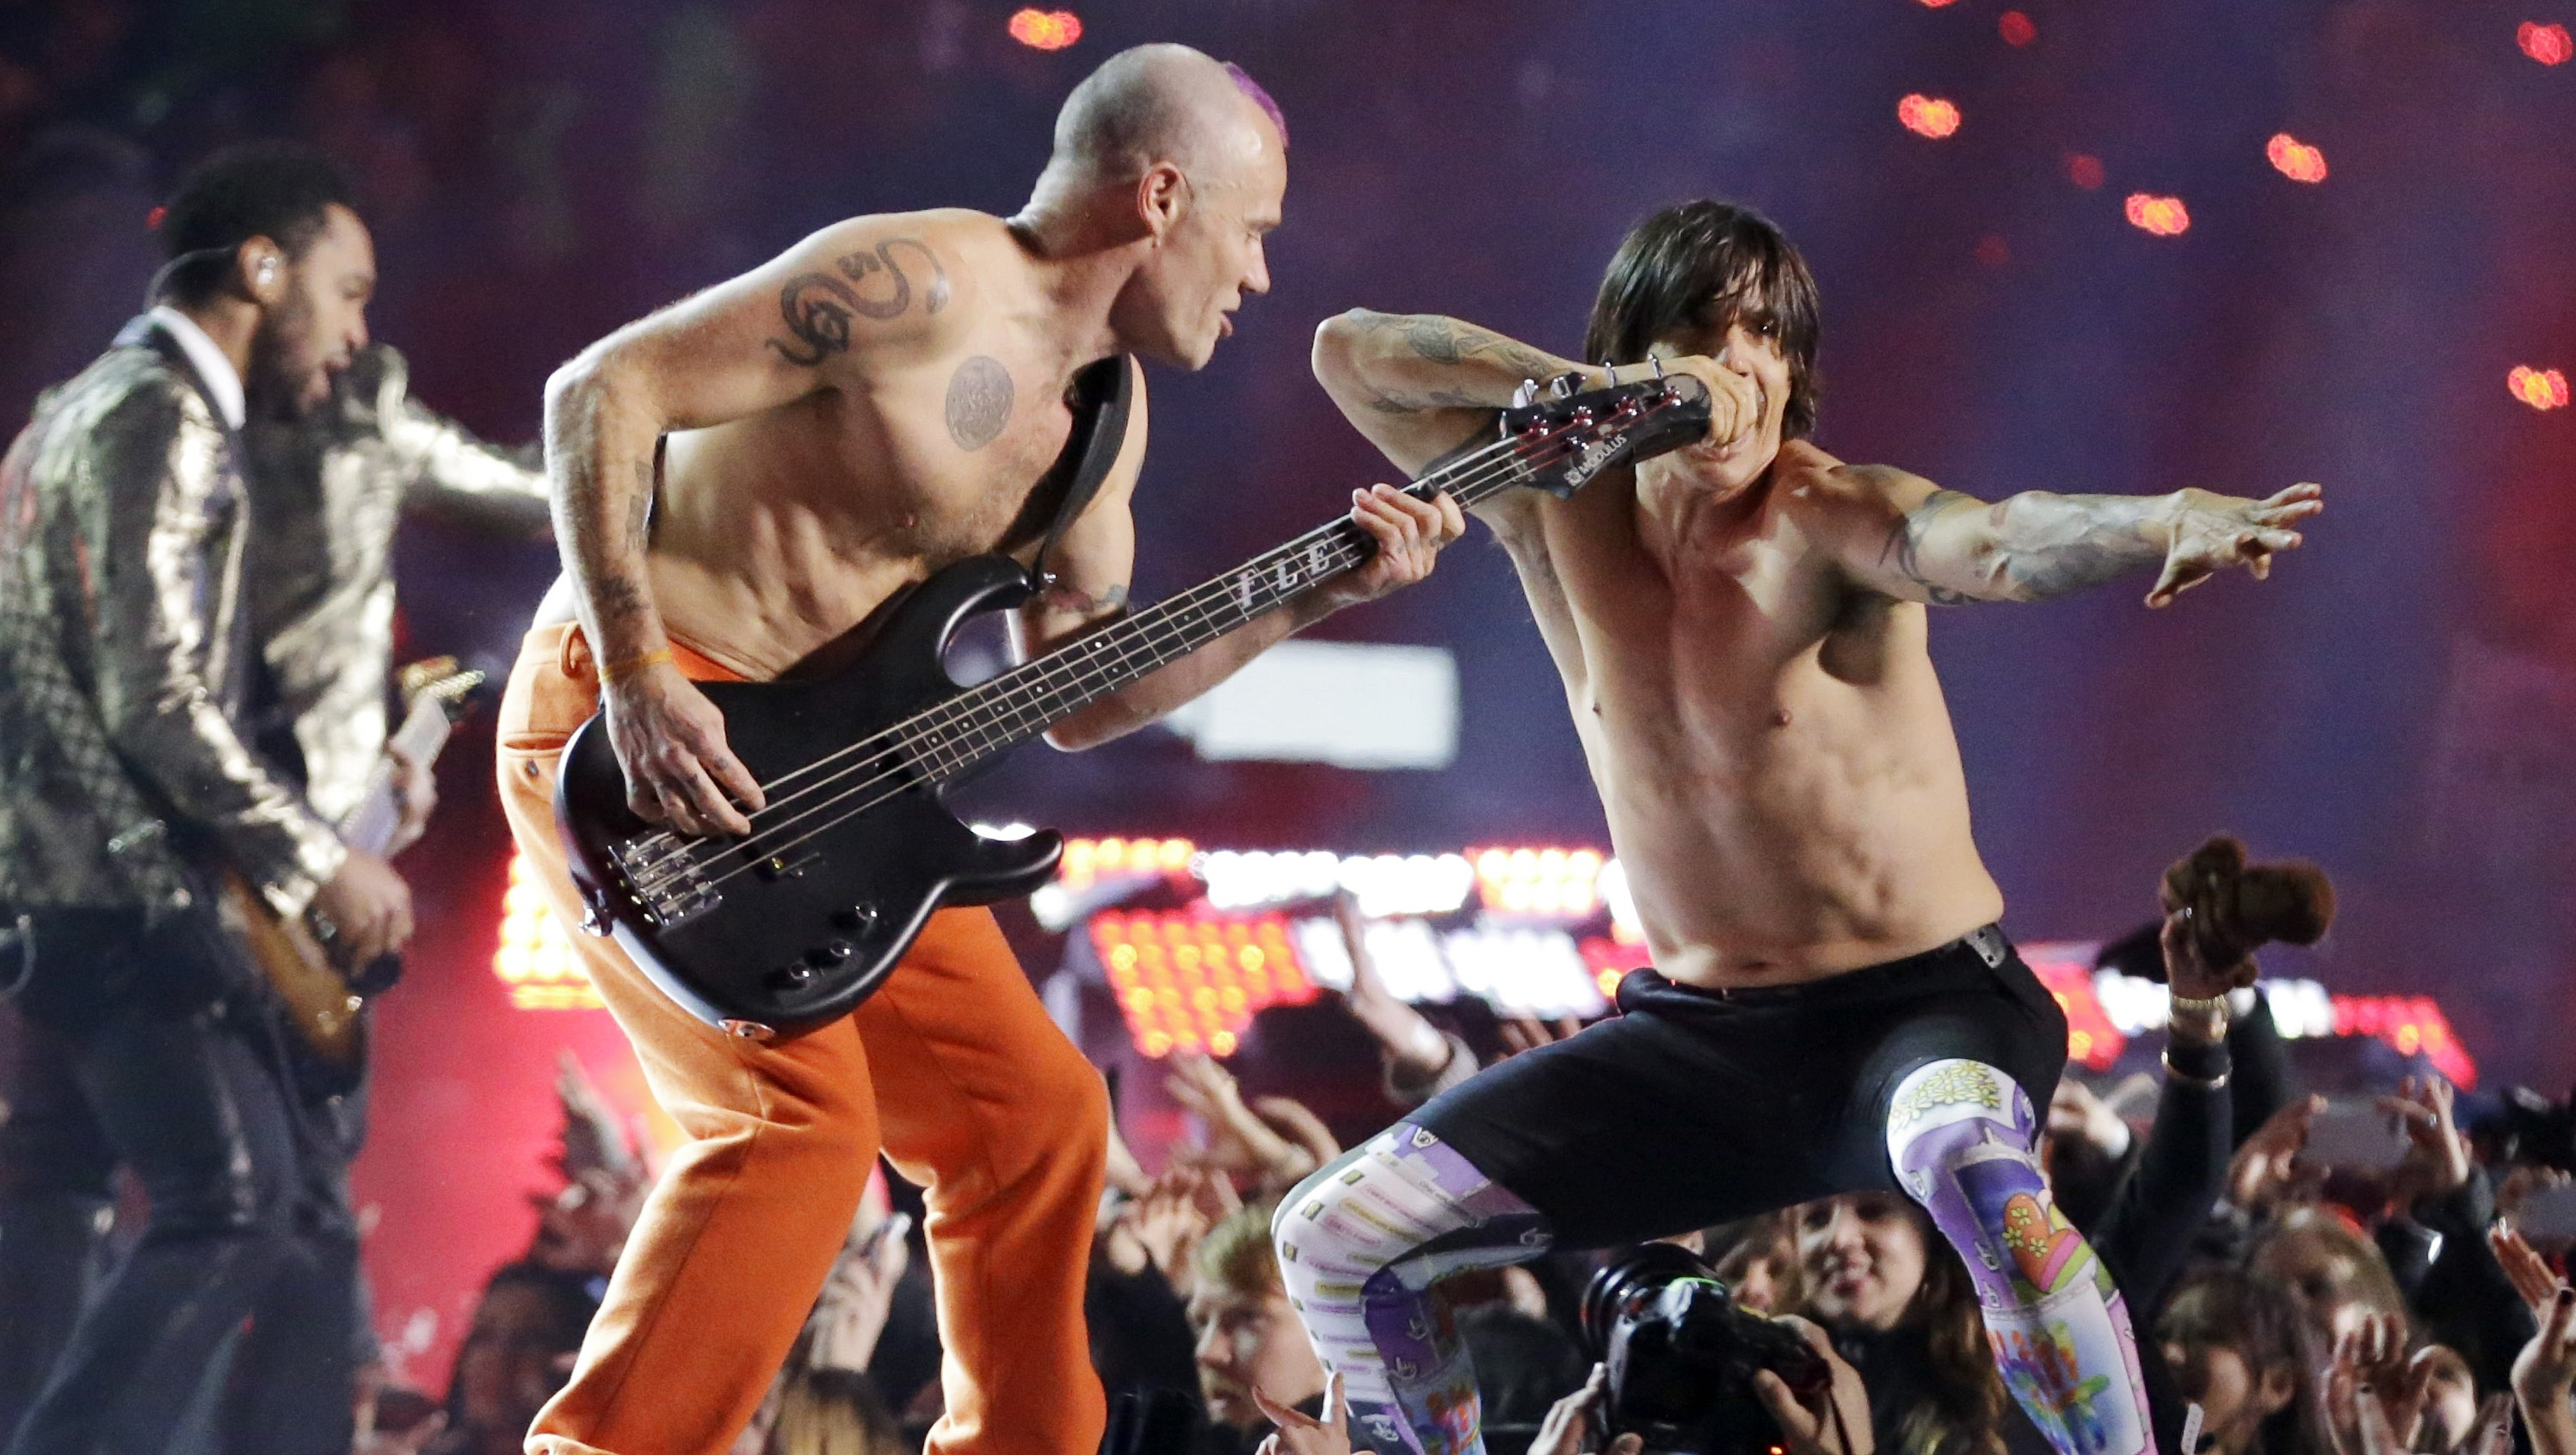 » The Red Hot Chili Peppers: Air Guitar Champions